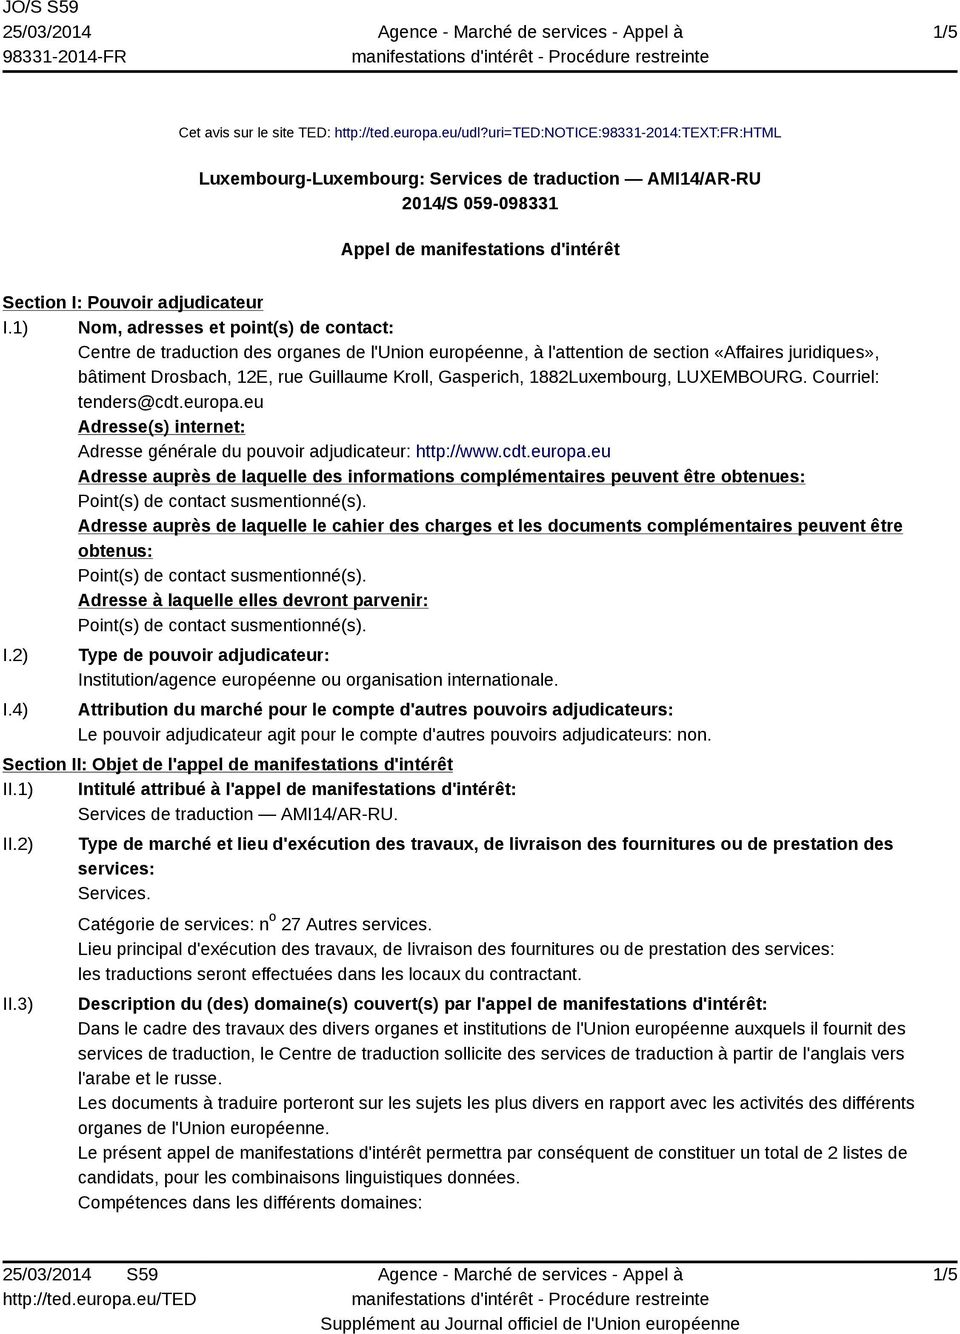 1) Nom, adresses et point(s) de contact: Centre de traduction des organes de l'union européenne, à l'attention de section «Affaires juridiques», bâtiment Drosbach, 12E, rue Guillaume Kroll,